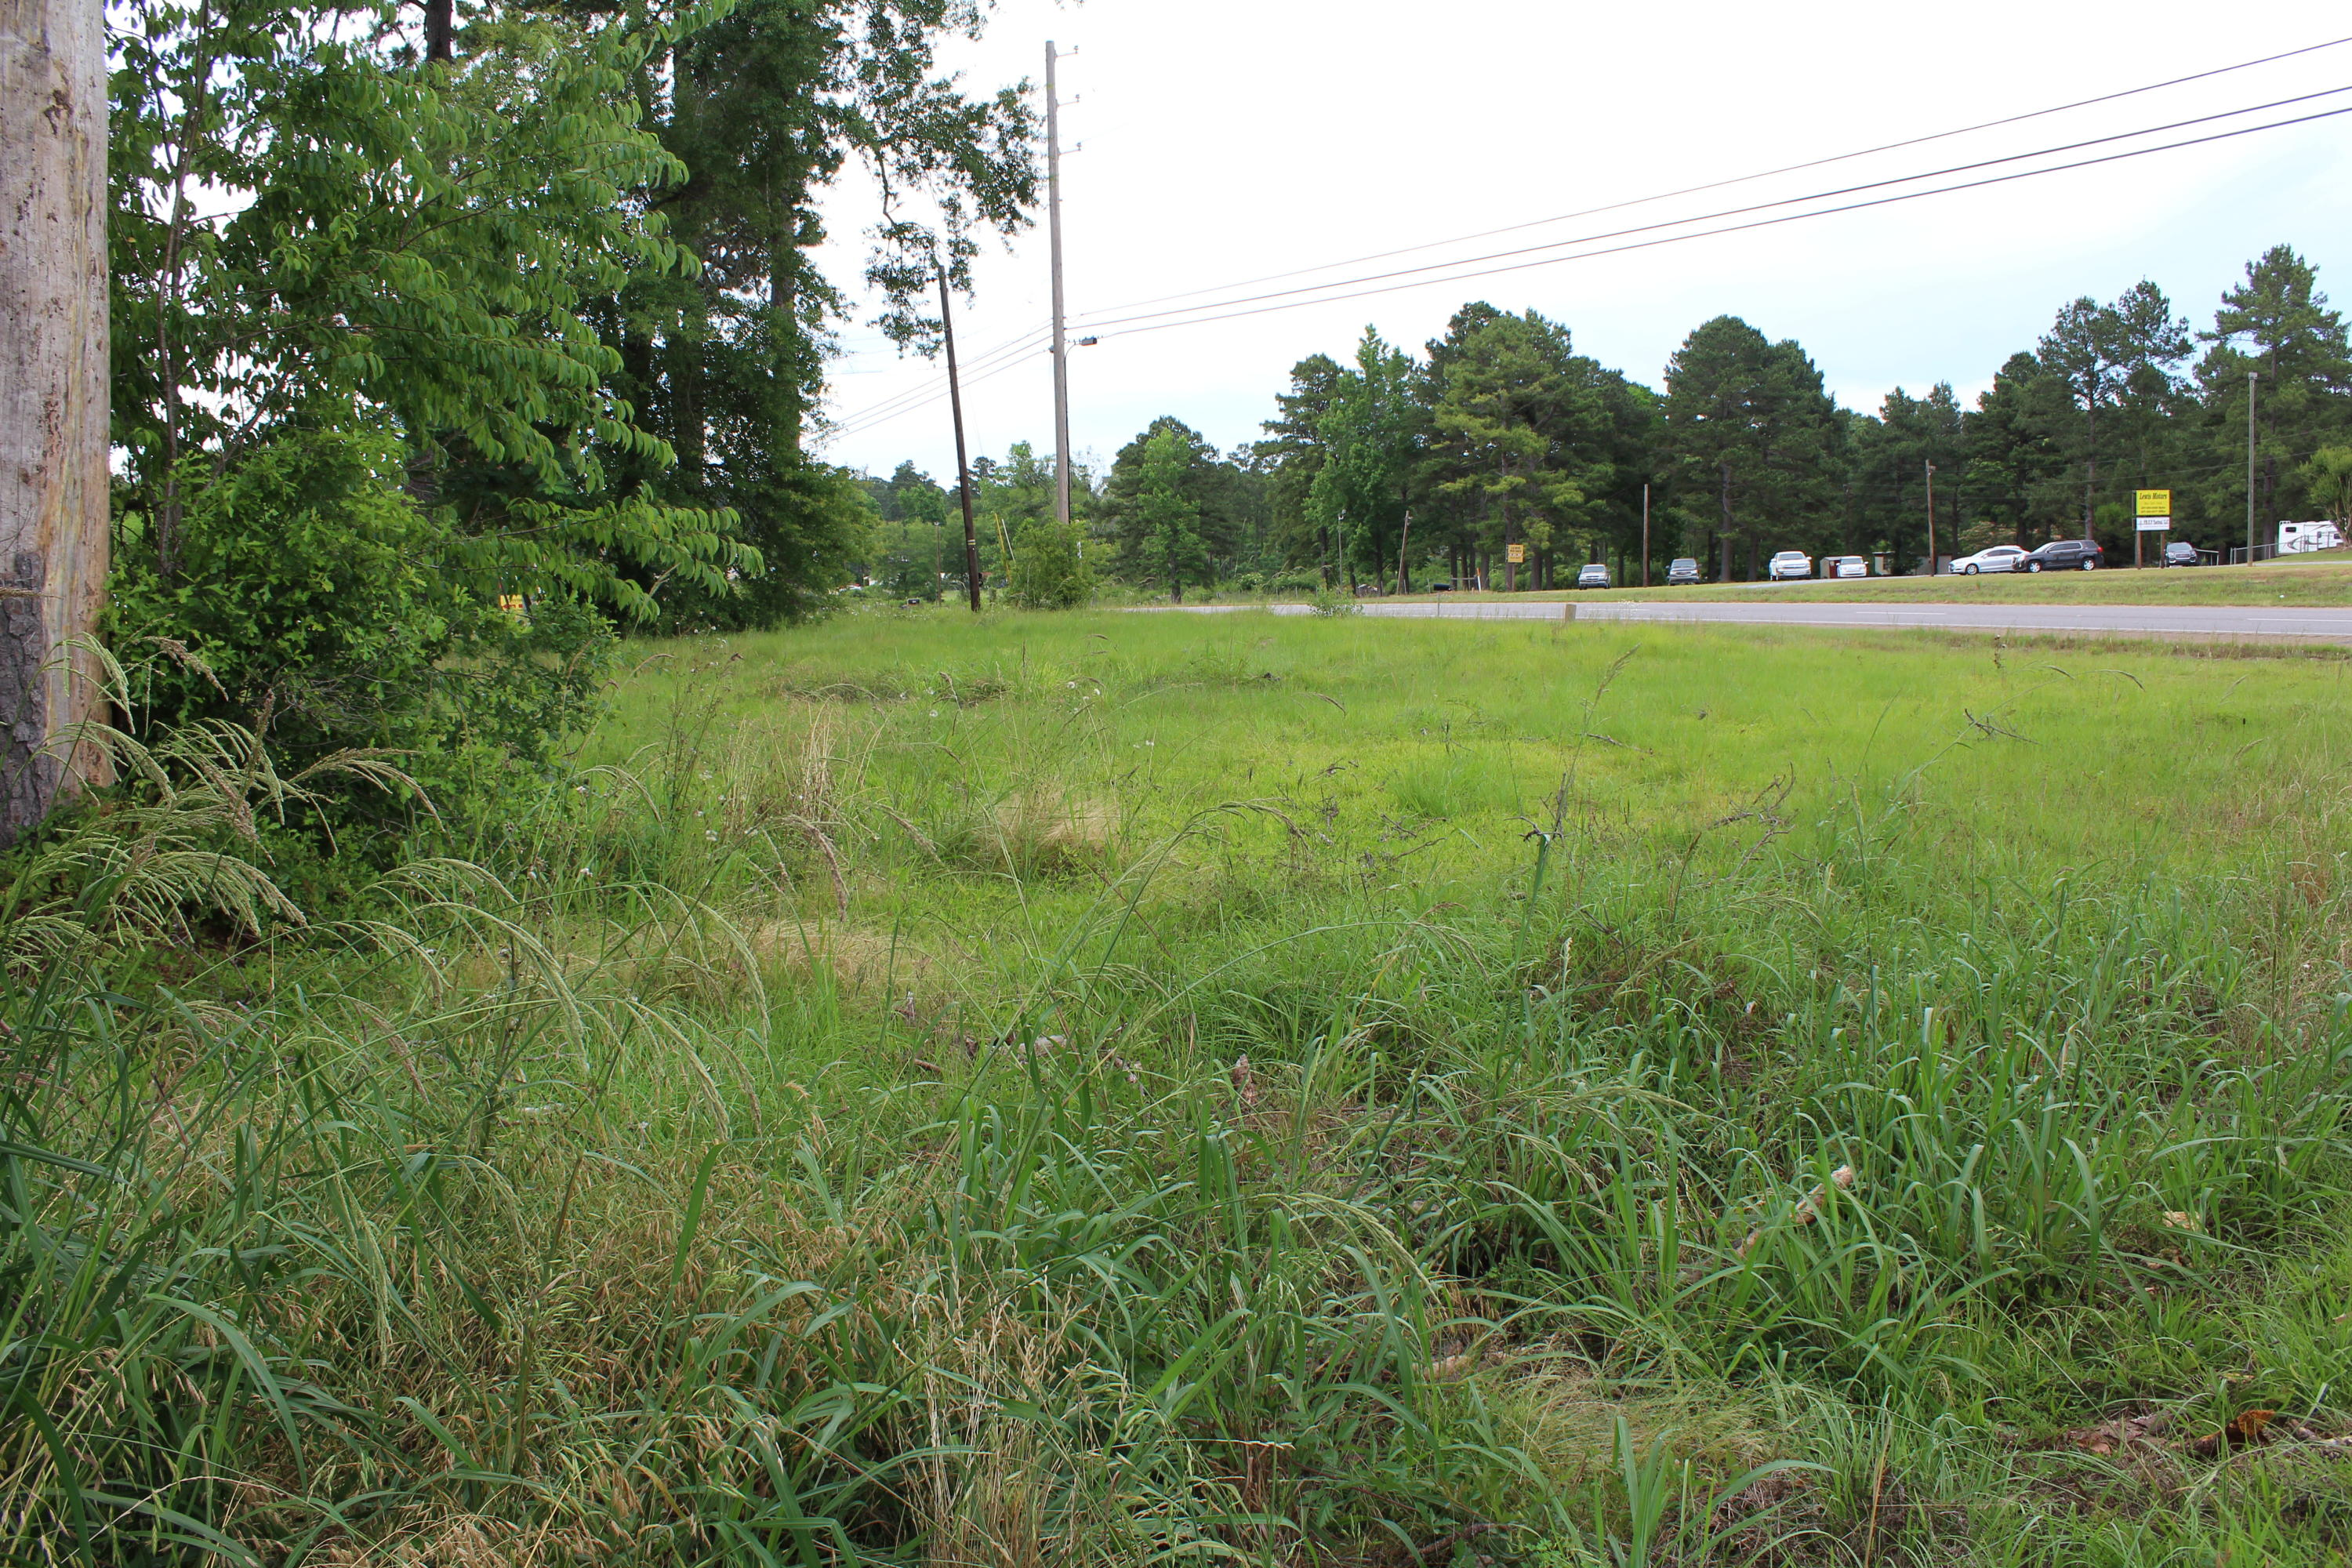 DeRidder land for sale,  Hwy 171S, Golden Acres, DeRidder LA - $30,000